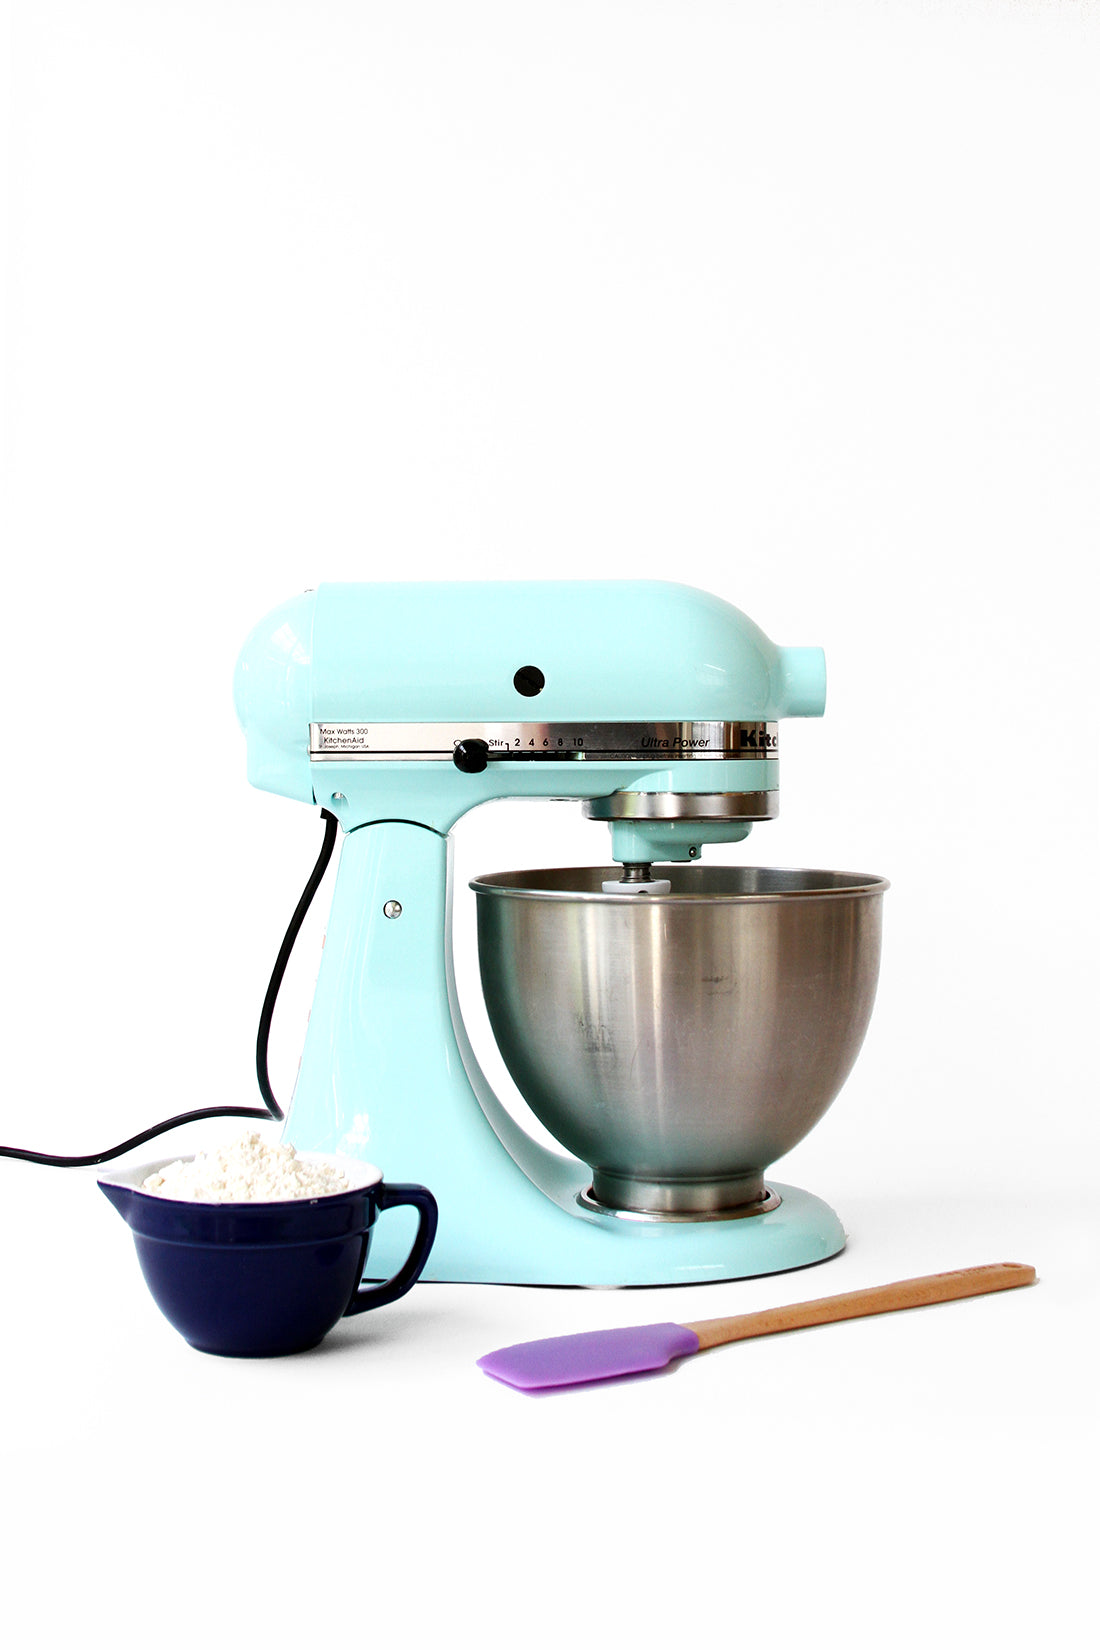 Image of the side of a blue KitchenAid next to a purple spatula for Miss Jones Baking Co Summer Strawberry + Rhubarb Tart